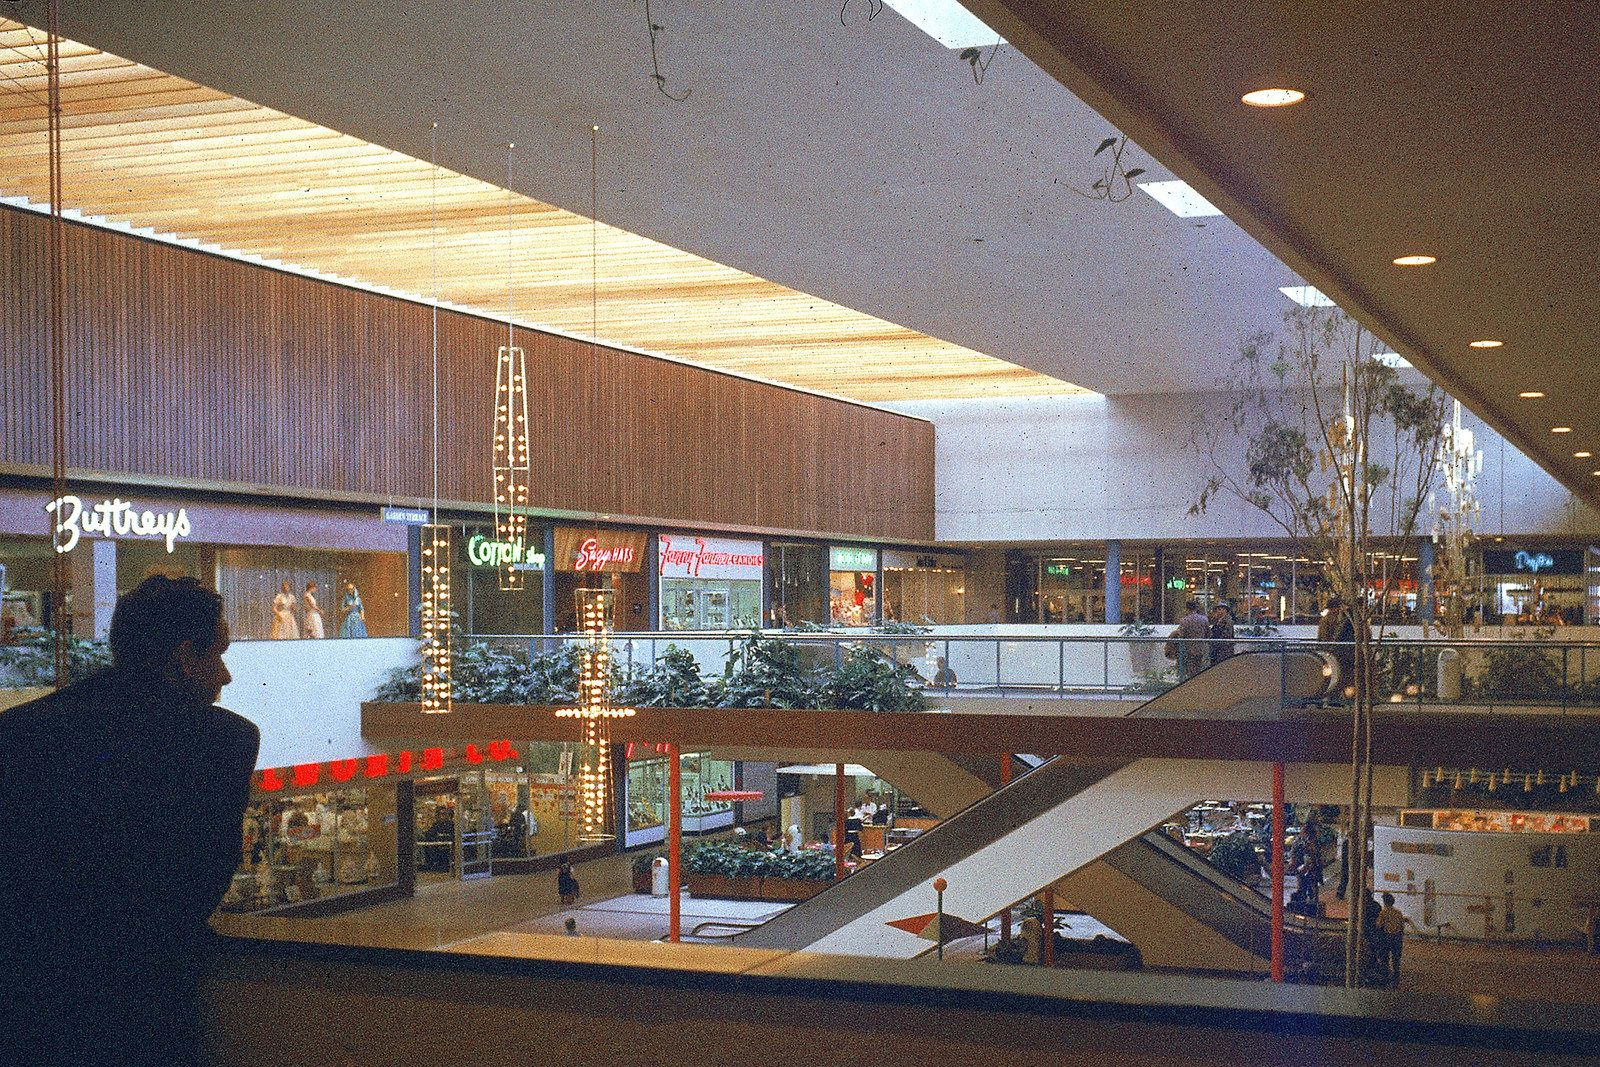 Here's What The First Shopping Mall In America Looked Like